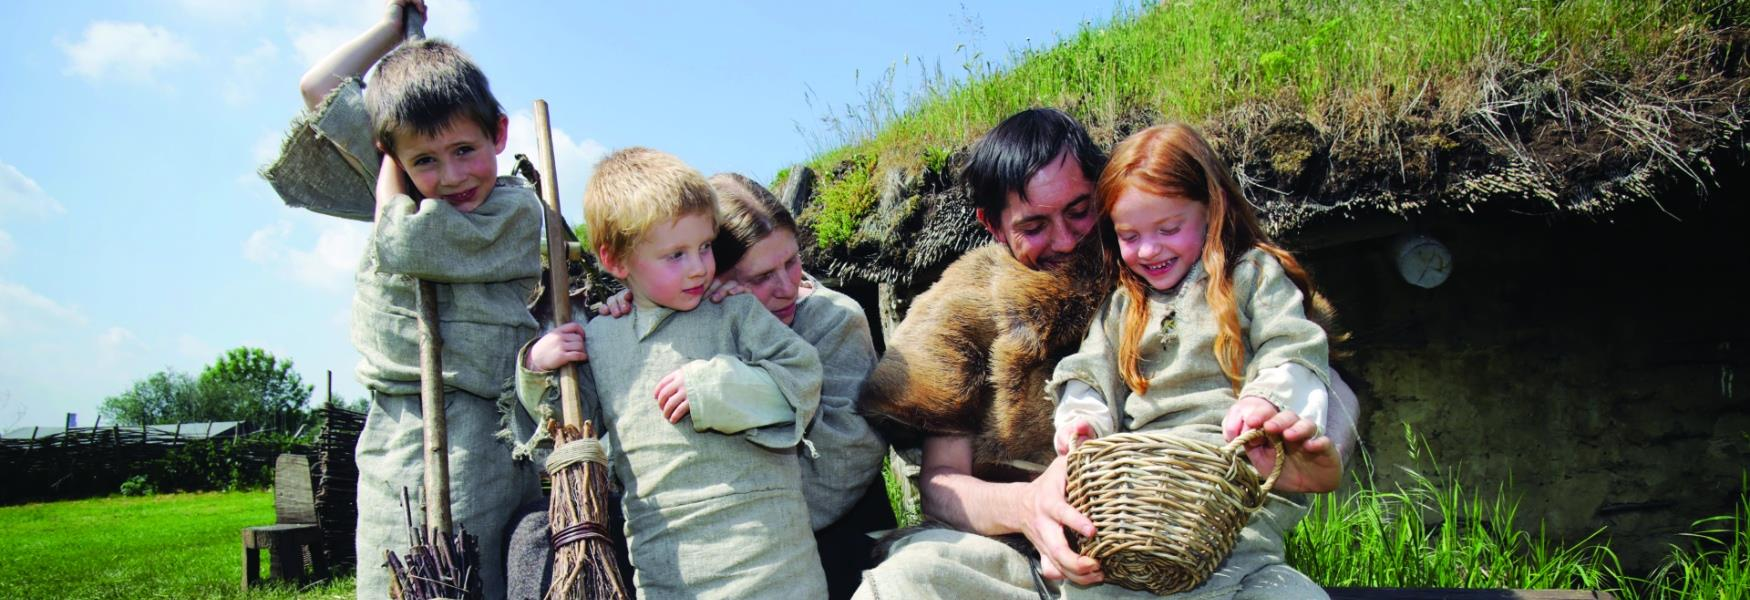 A family dressed up with Bronze Age costumes.